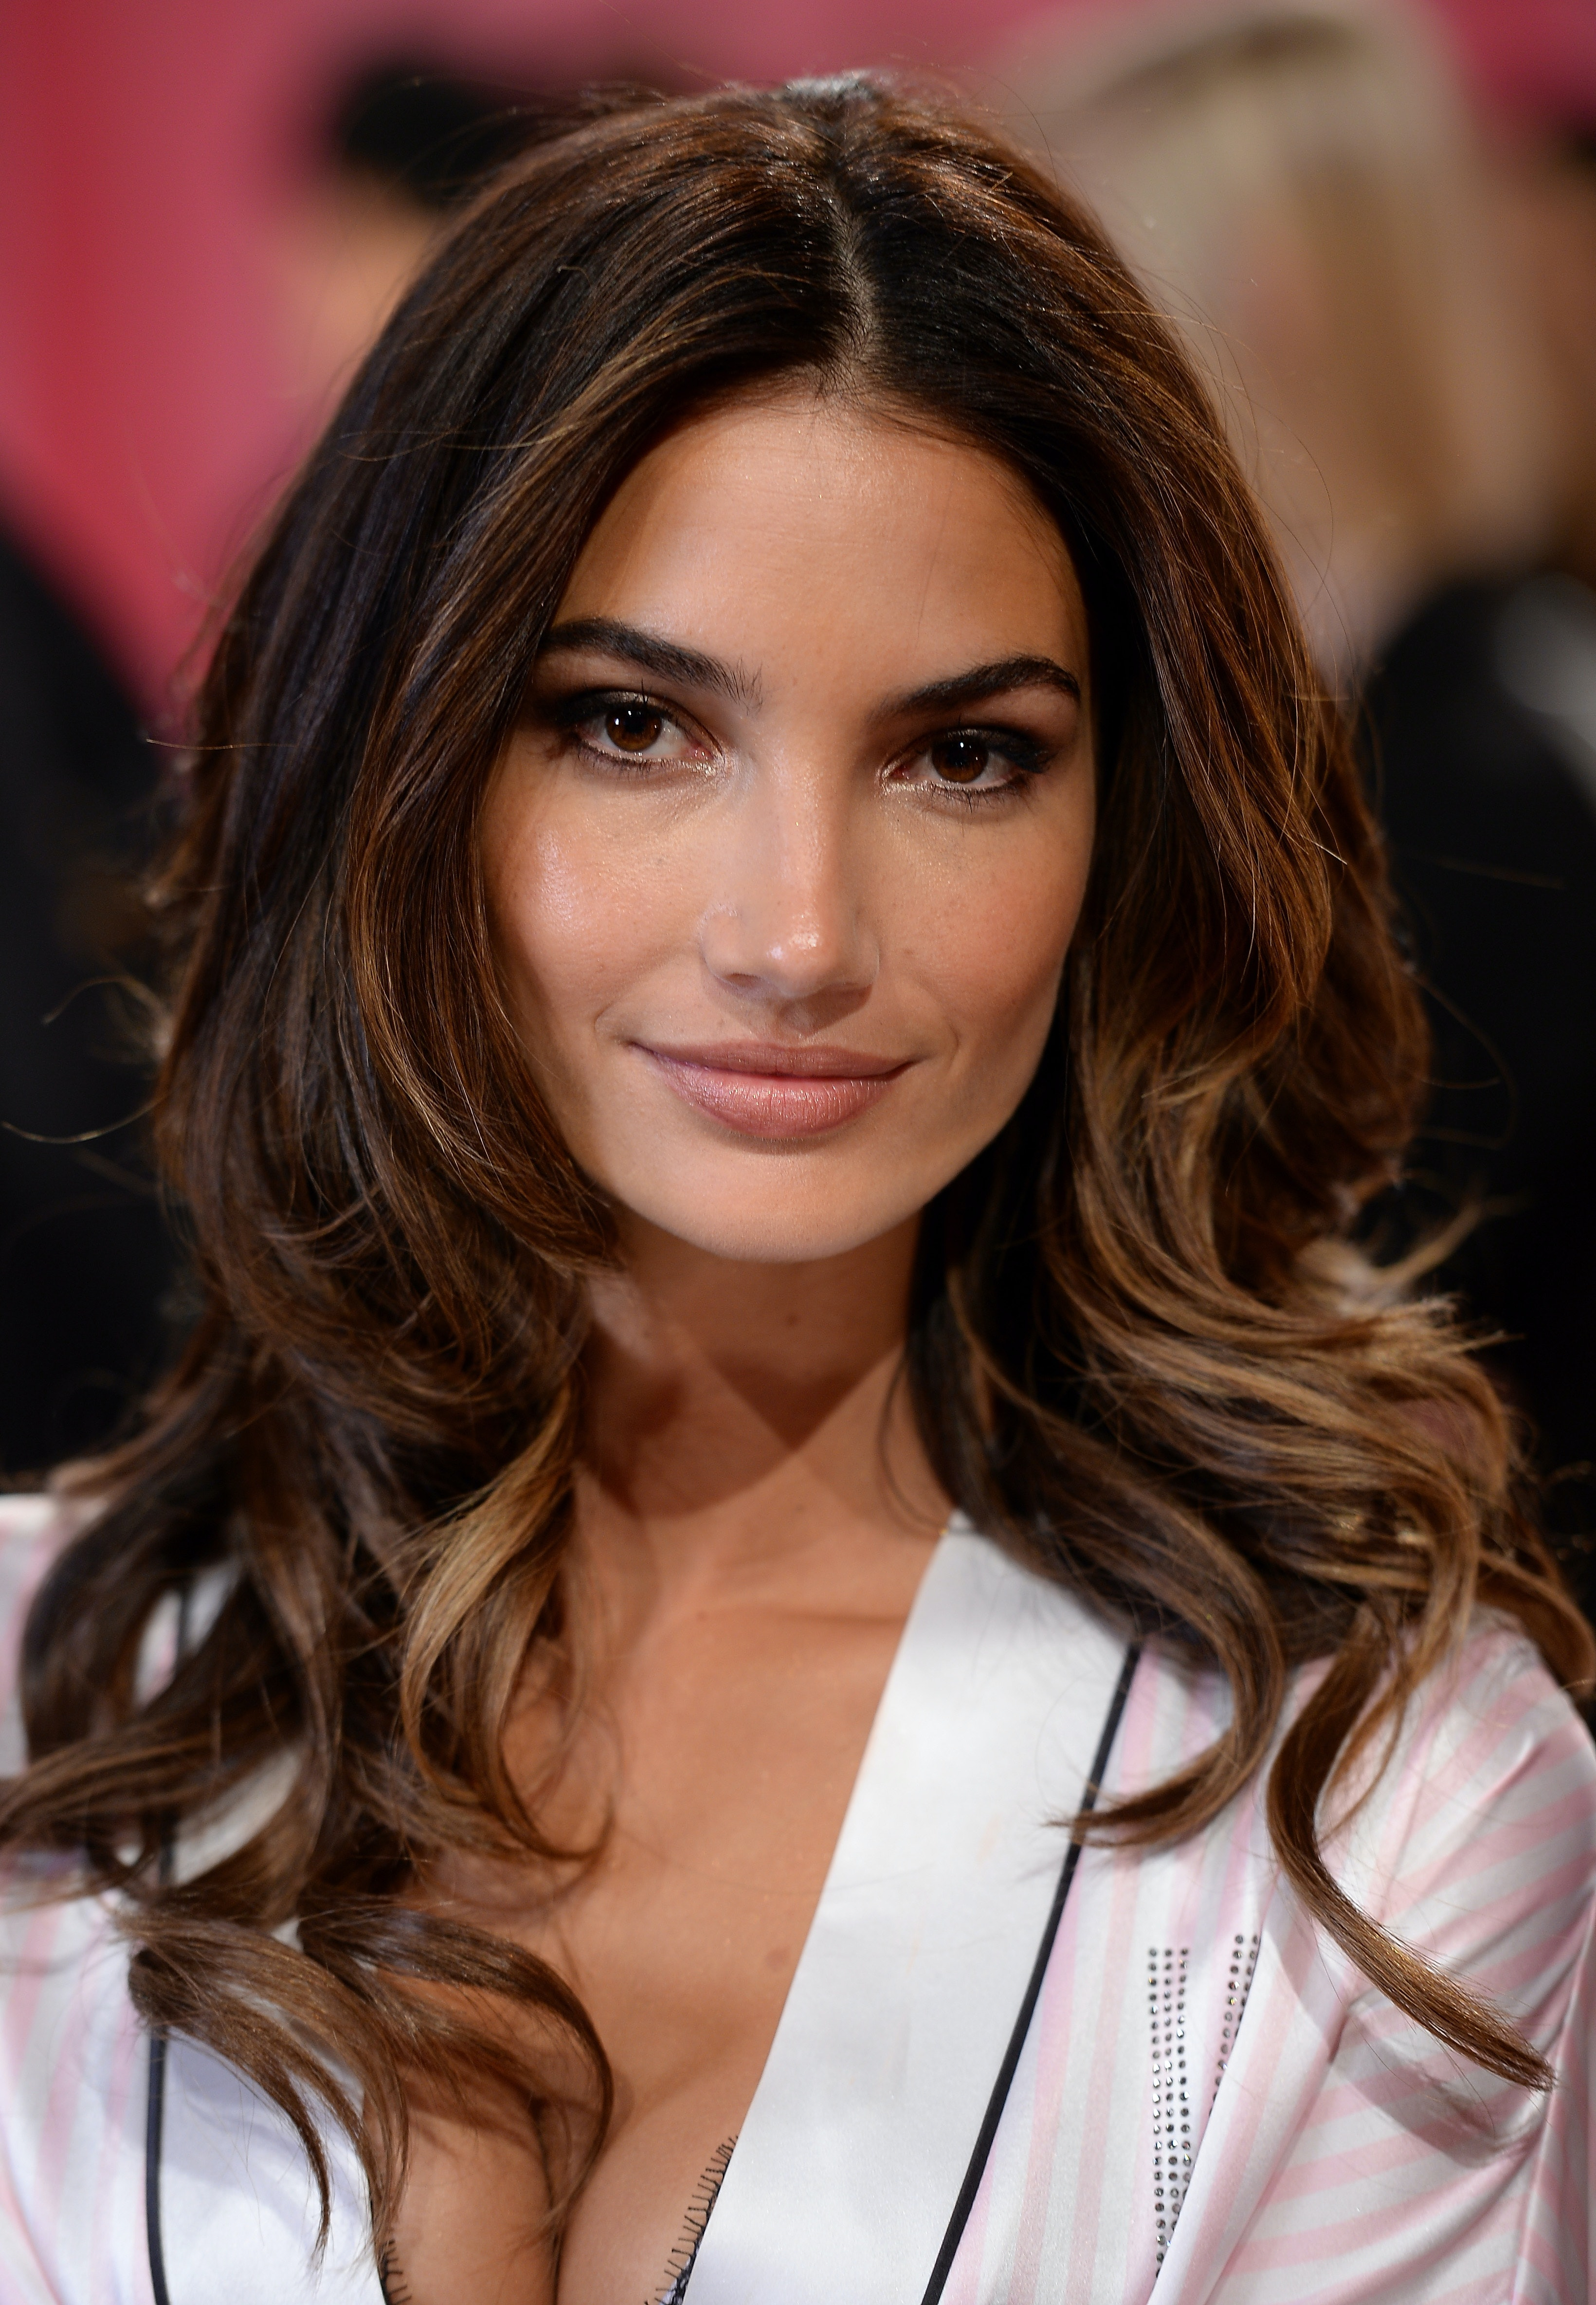 How To Get Victoria's Secret Angel Hair Like Lily Aldridge